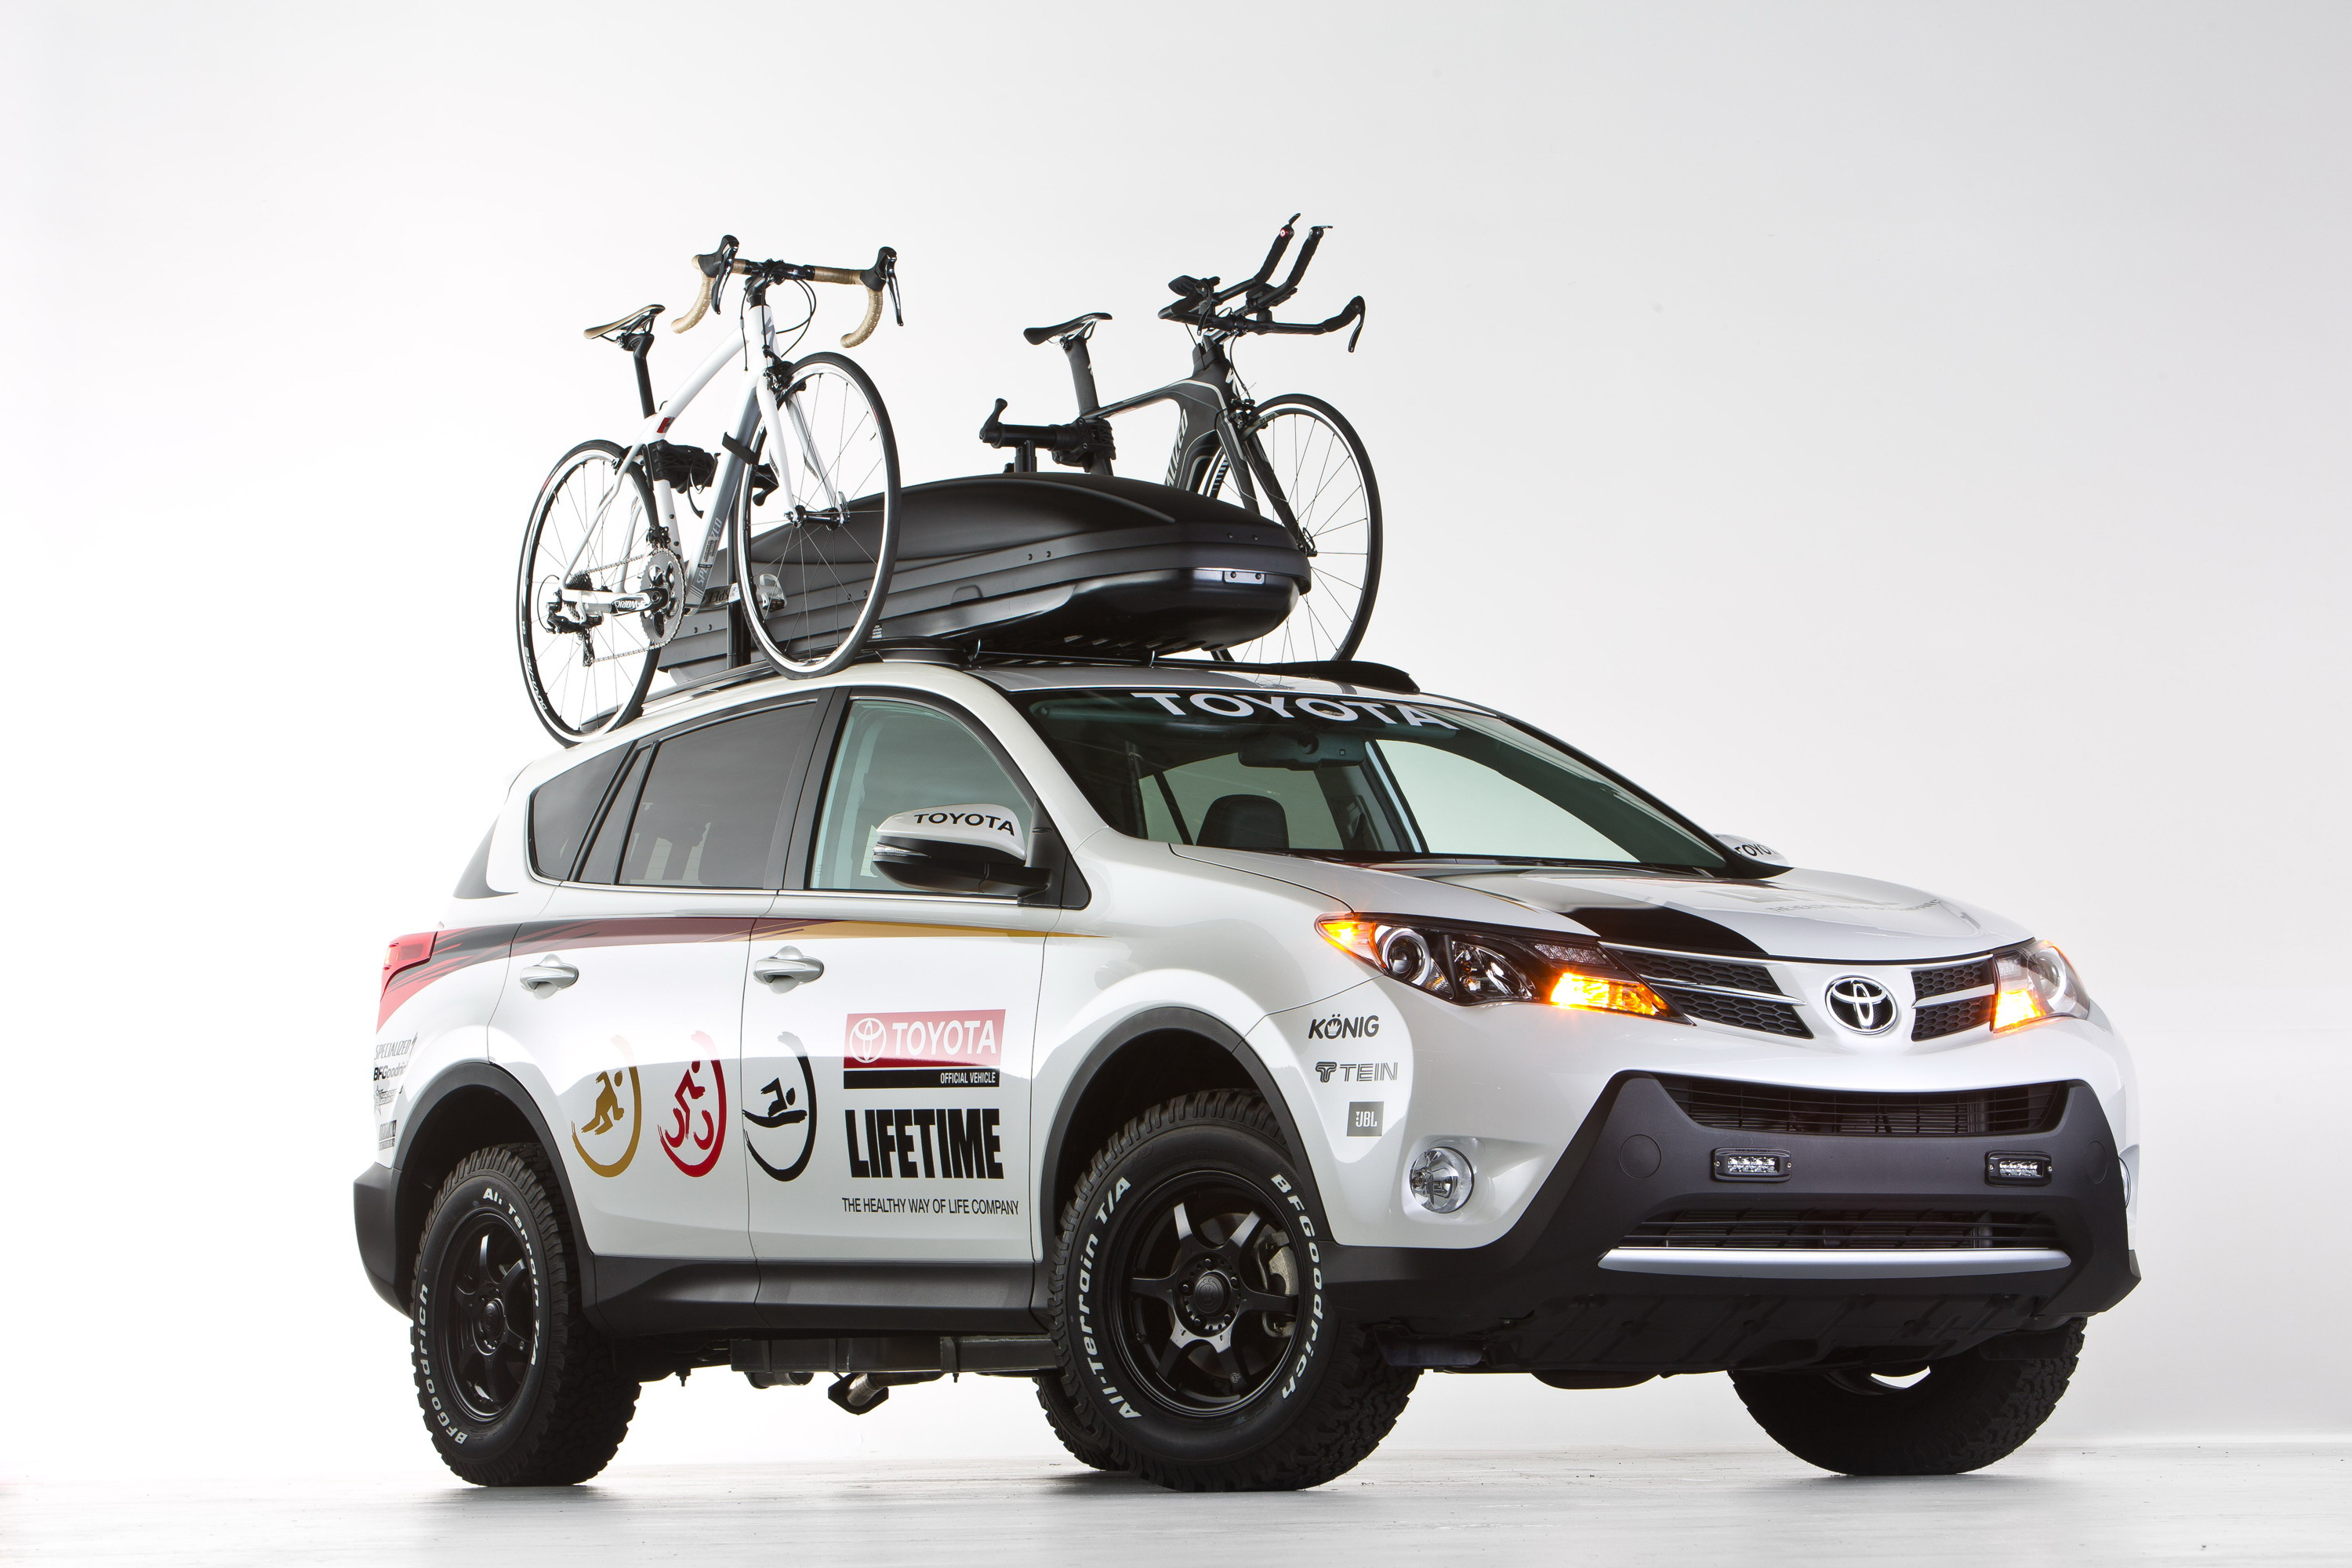 2013 Toyota RAV4 Life Time Fitness Review - Top Speed